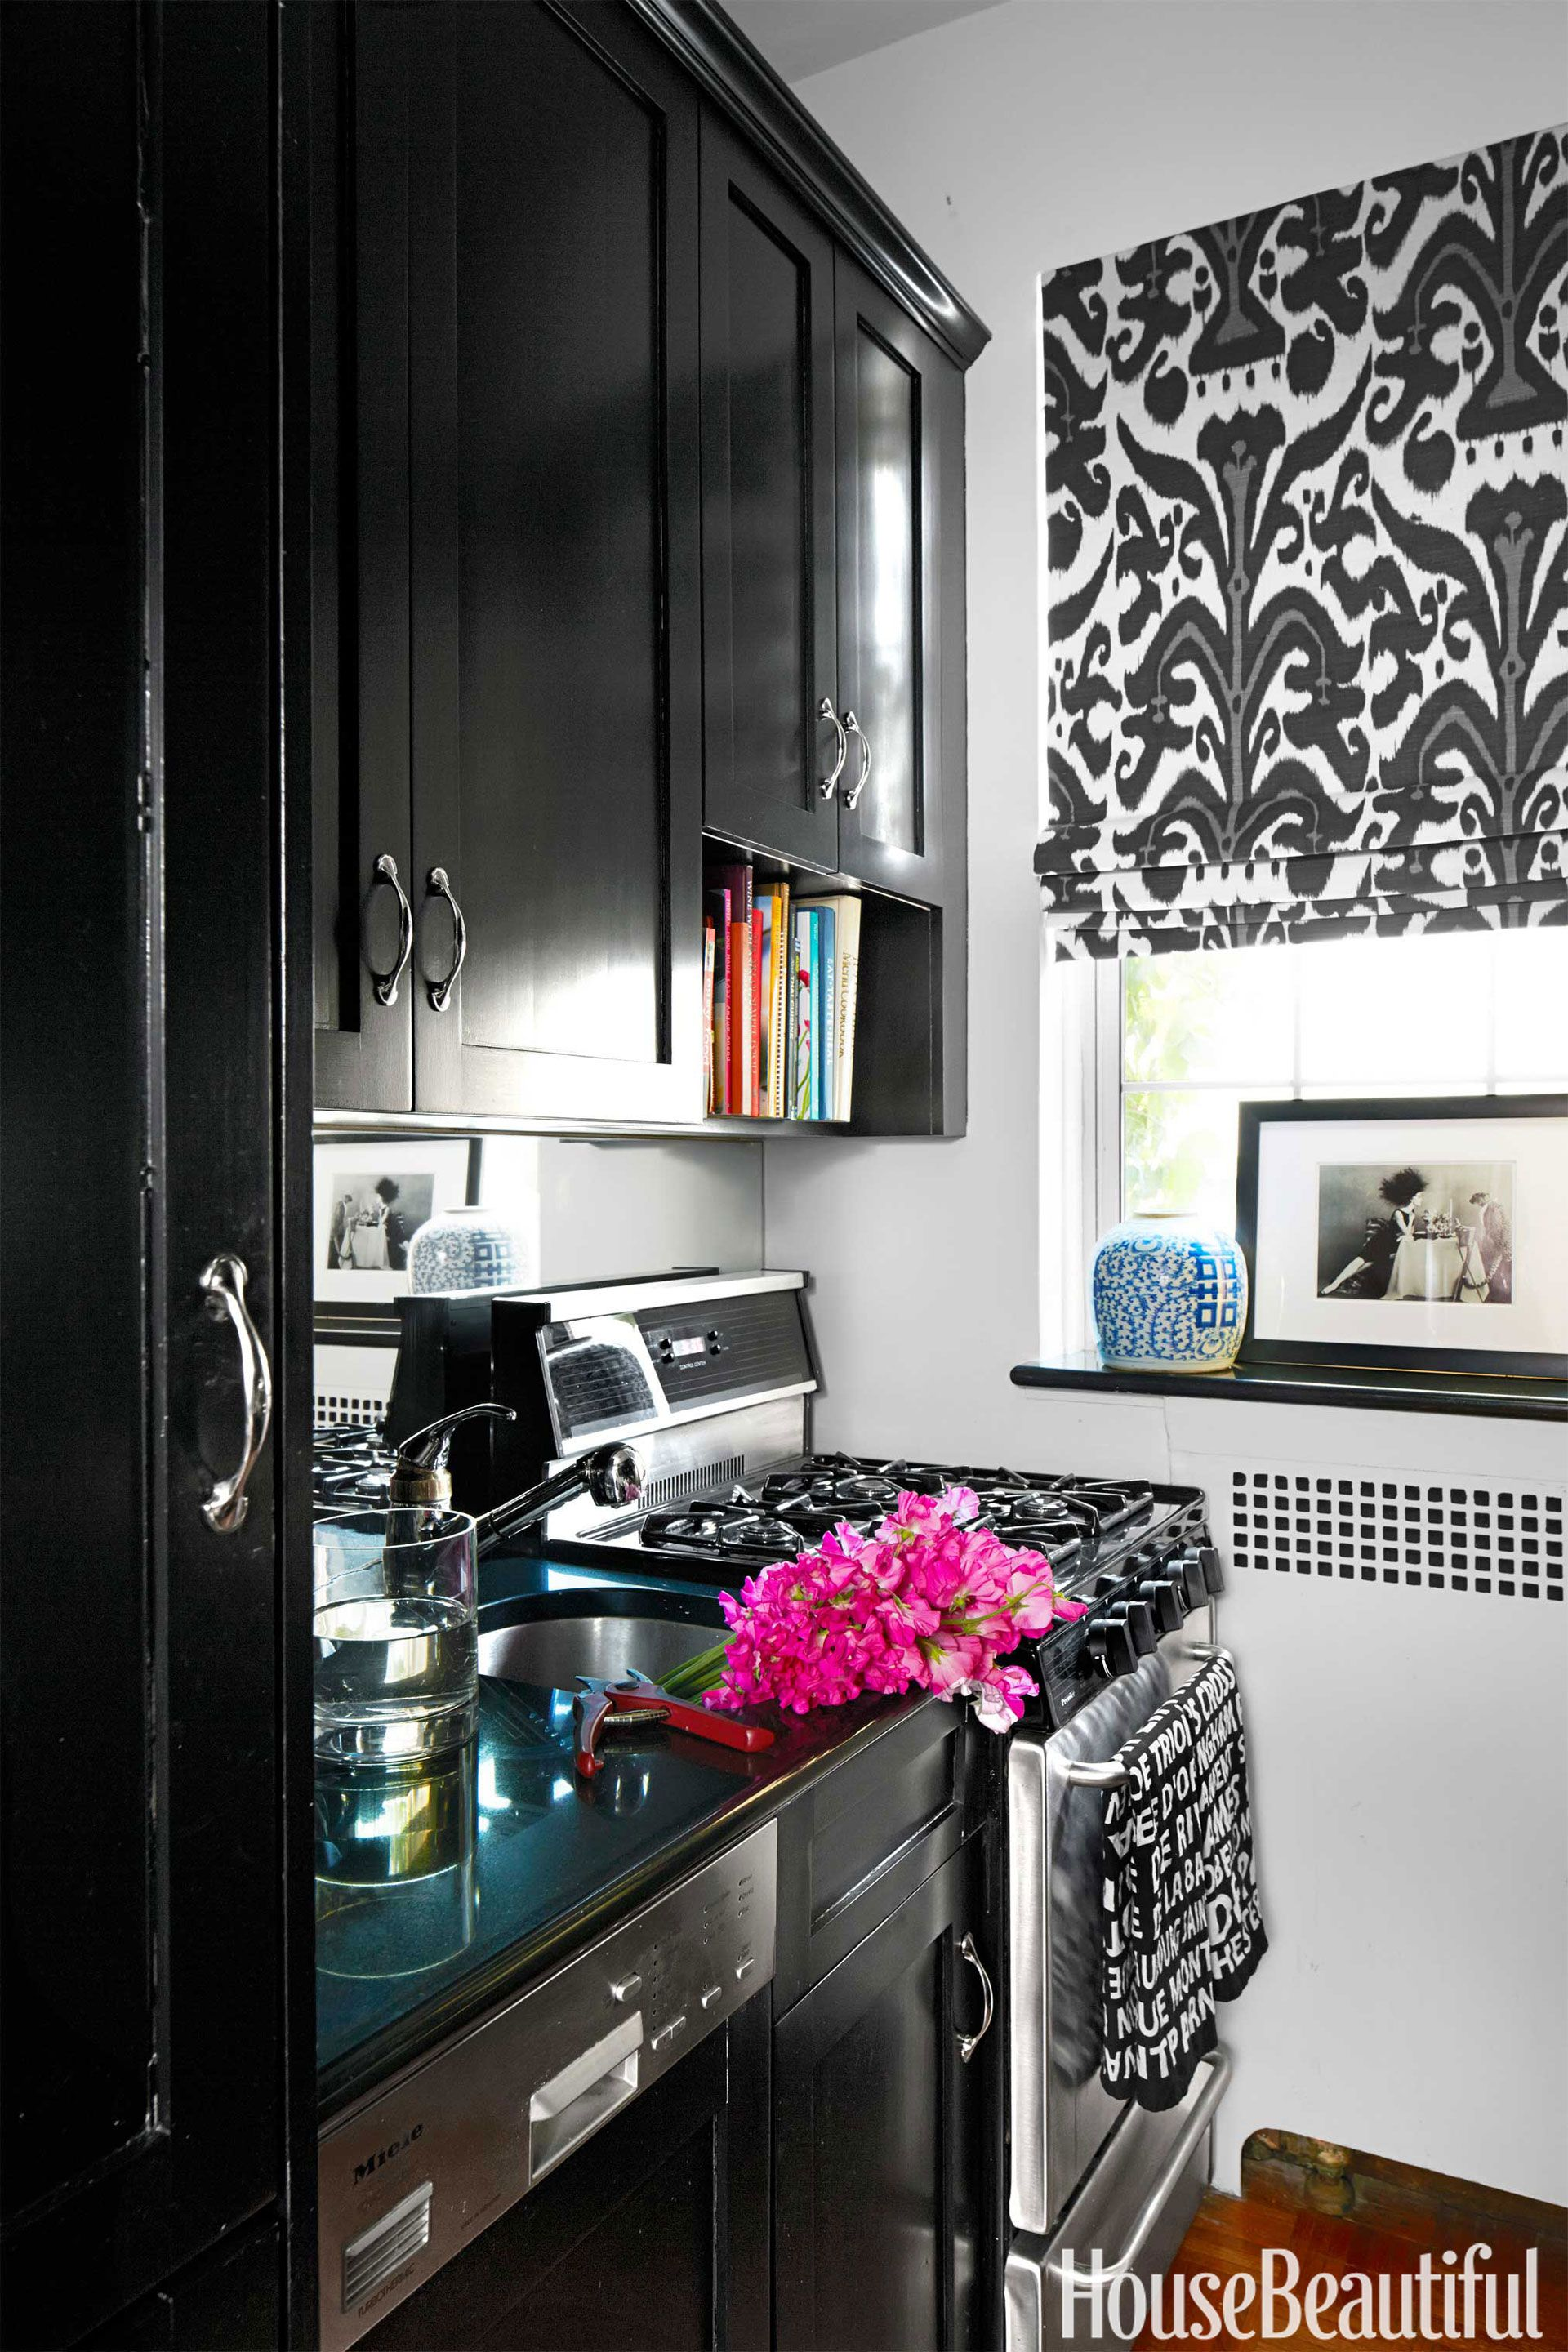 what cabinets kitchen black go cupboards pin color countertops with search google cupboard